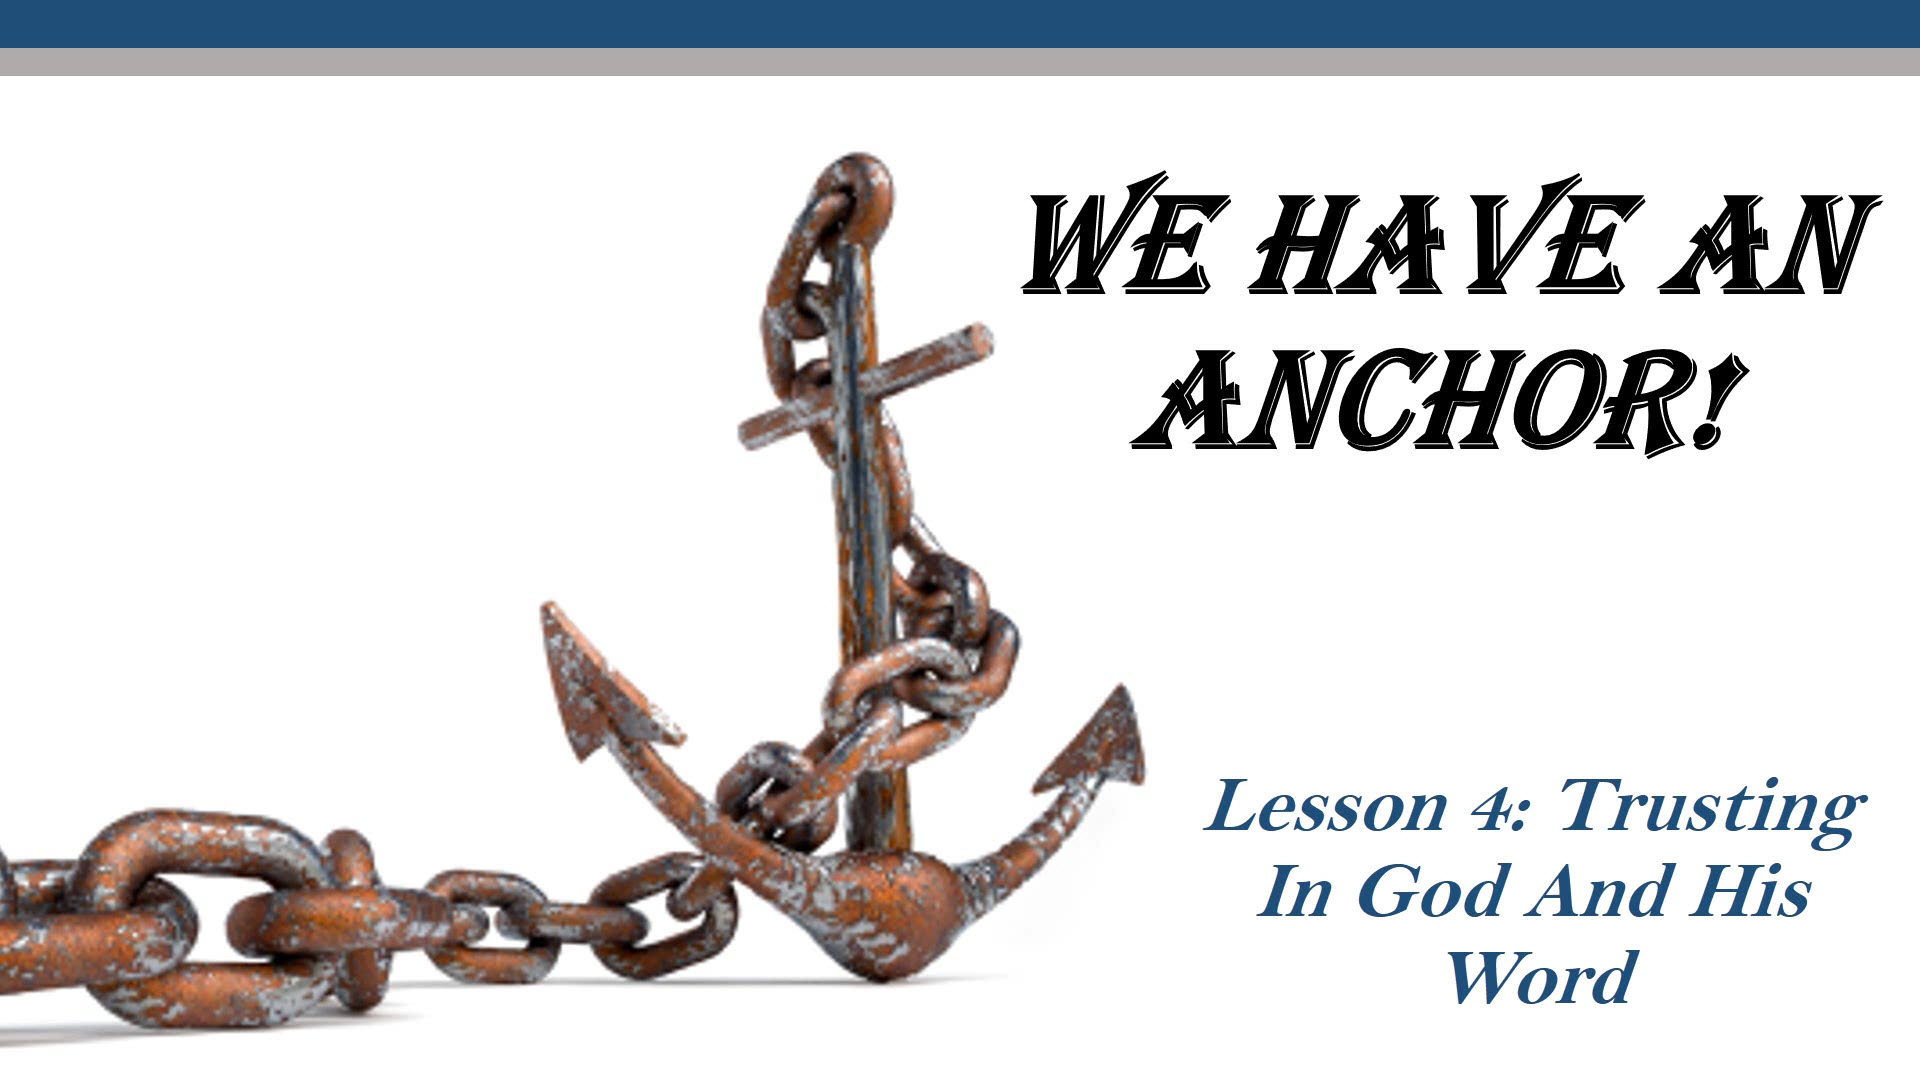 We Have Anchor (Lesson 4: Trusting In God And His Word)